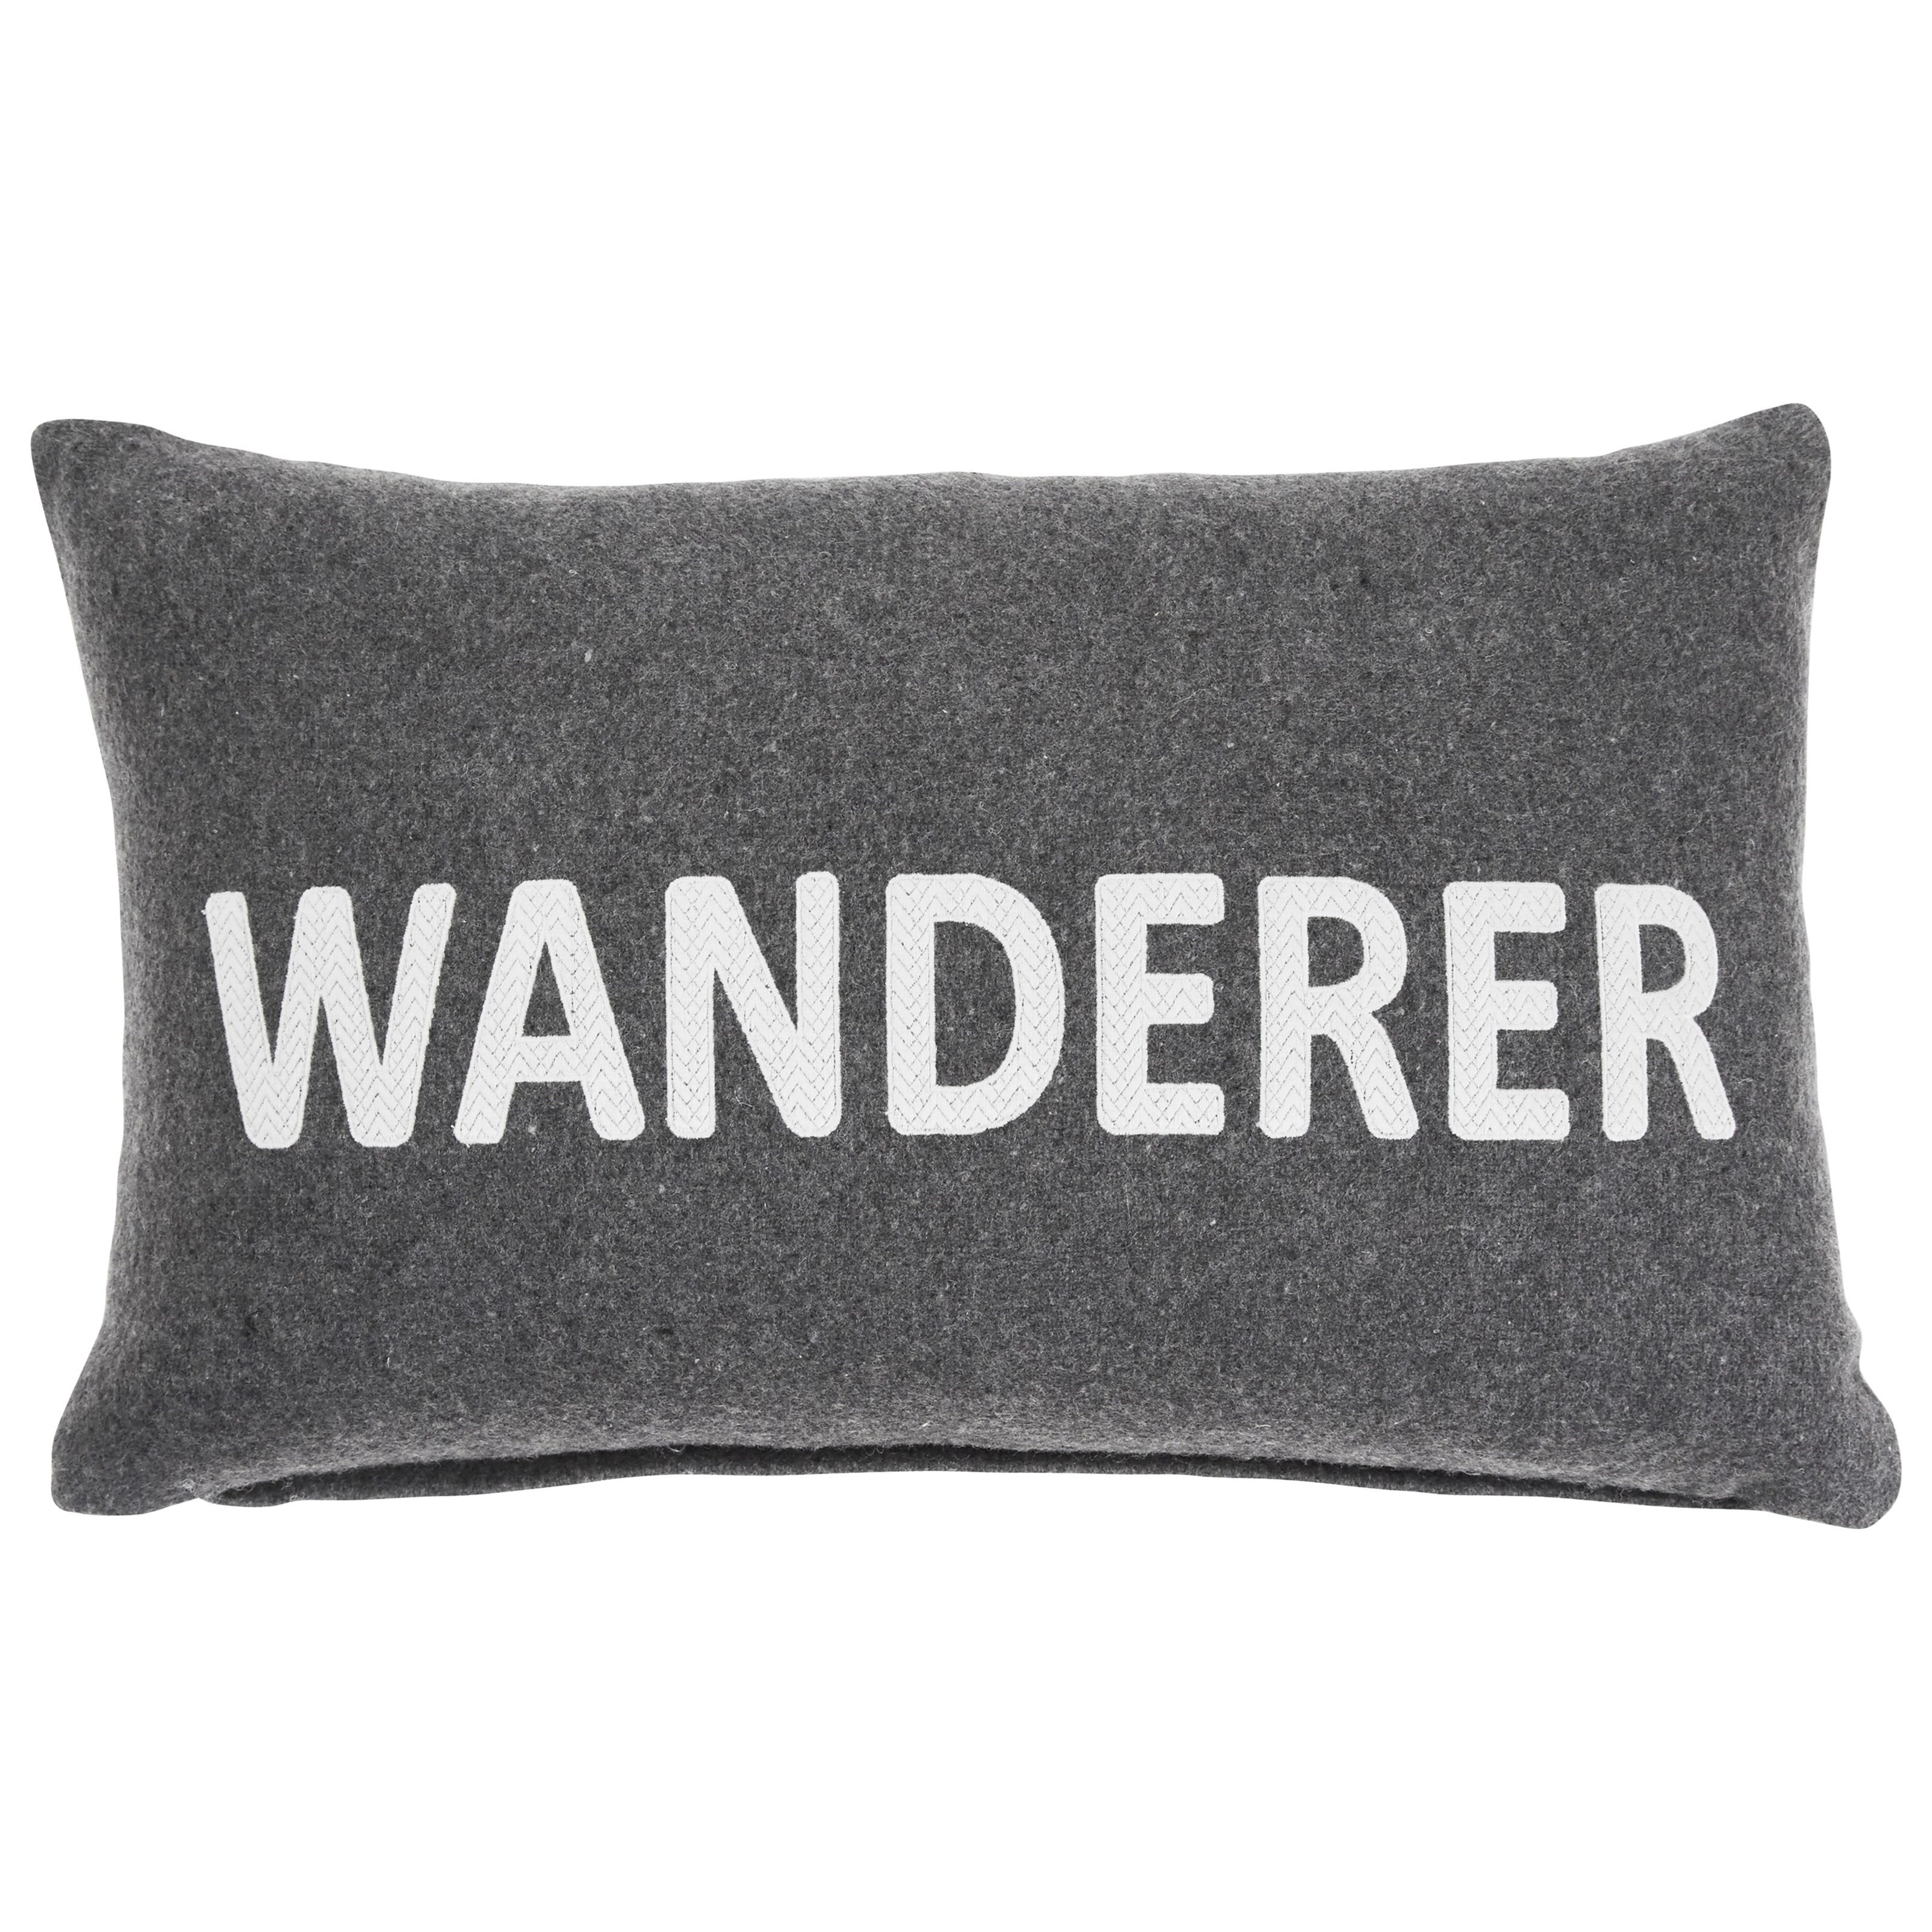 Pillows Wanderer Charcoal Pillow by Signature Design by Ashley at Miller Waldrop Furniture and Decor